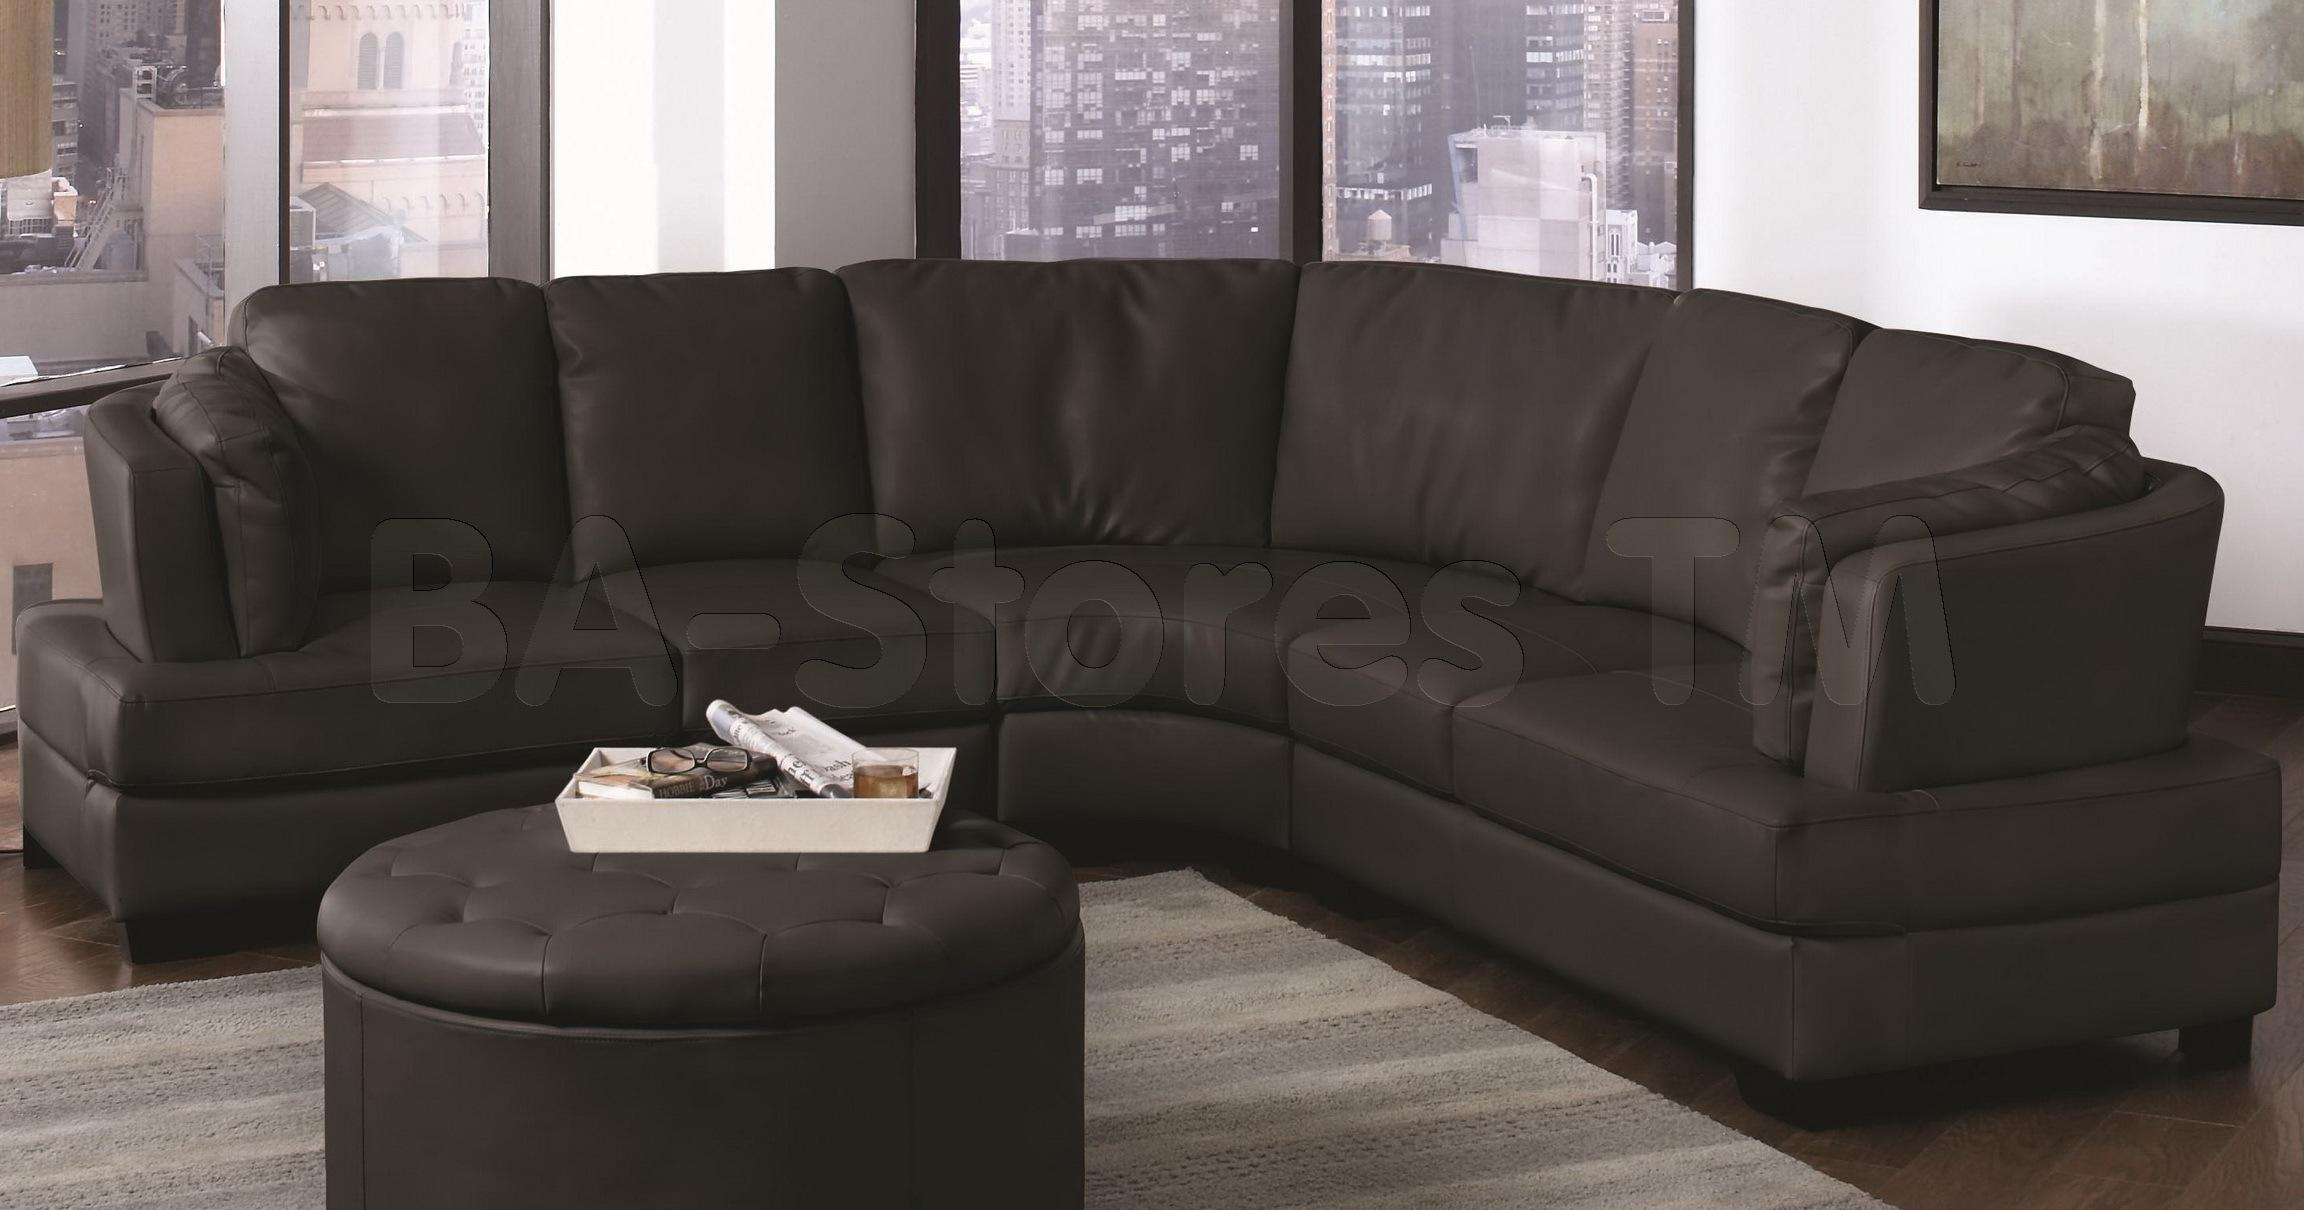 Circular Sectional Sofa Circle | Tehranmix Decoration With Circular Sectional Sofa (View 2 of 15)